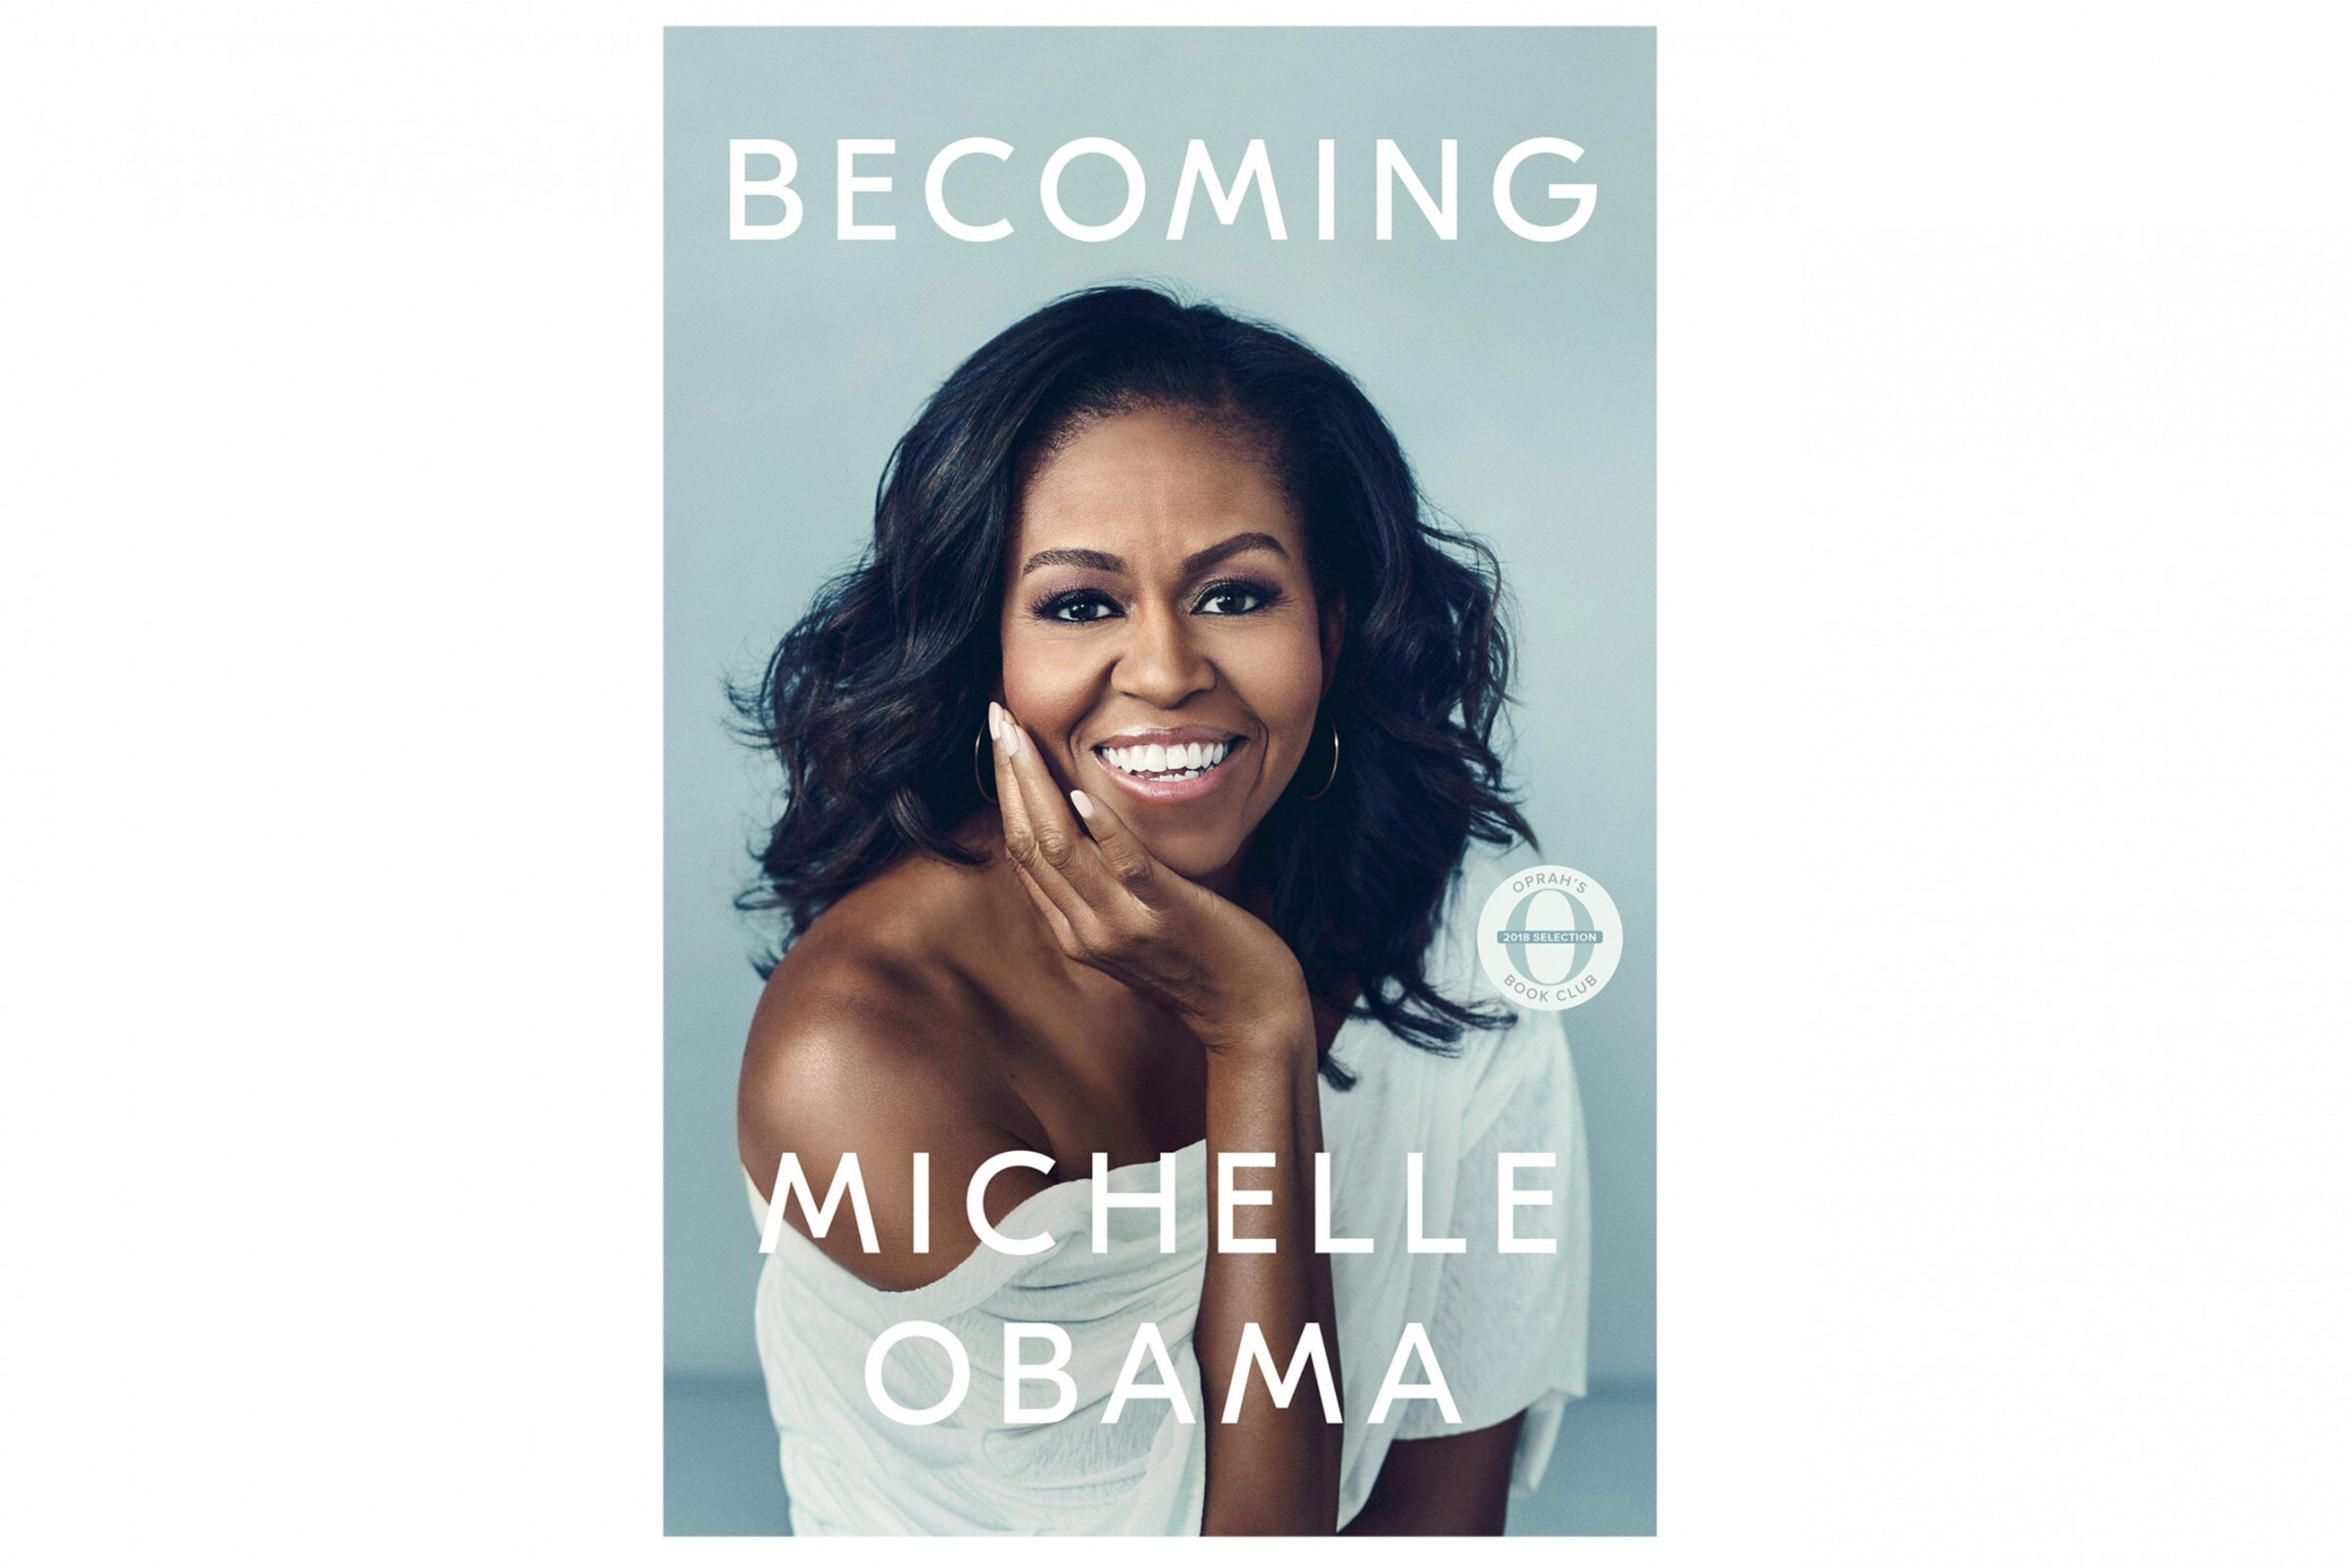 Books to read to kick your New Year off right 'Becoming' by Michelle Obama